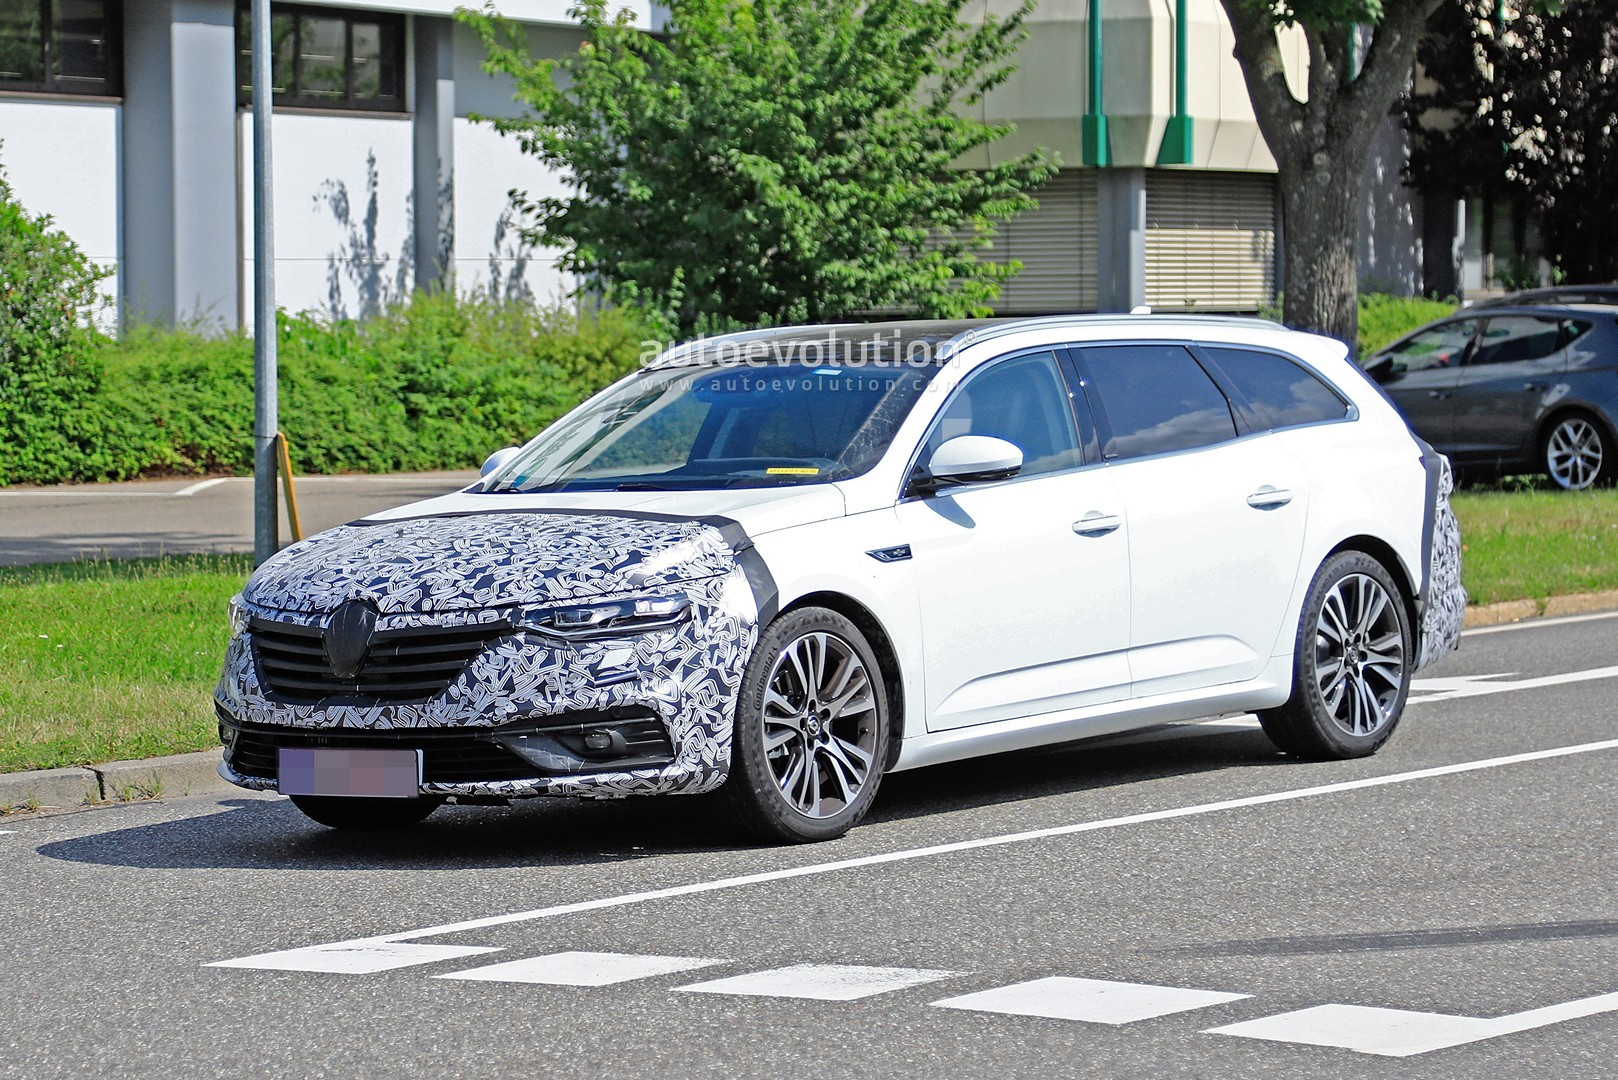 2020 - [Renault] Talisman restylée - Page 8 2021-renault-talisman-wagon-spied-for-the-first-time-with-facelift_3